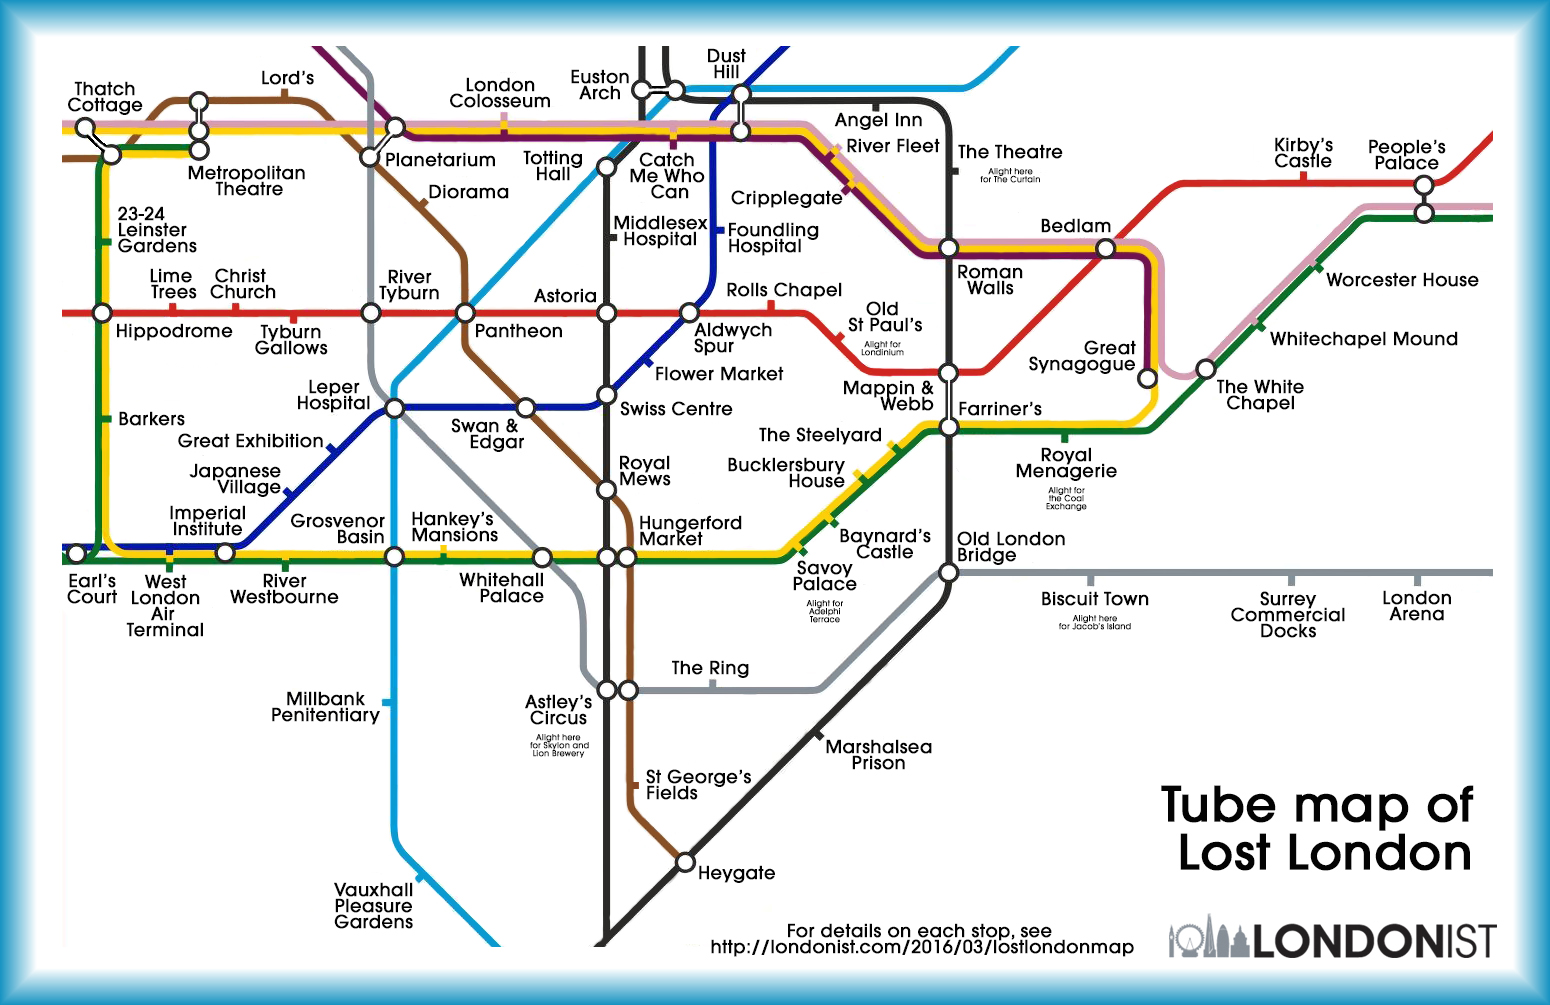 The Lost London Tube Map